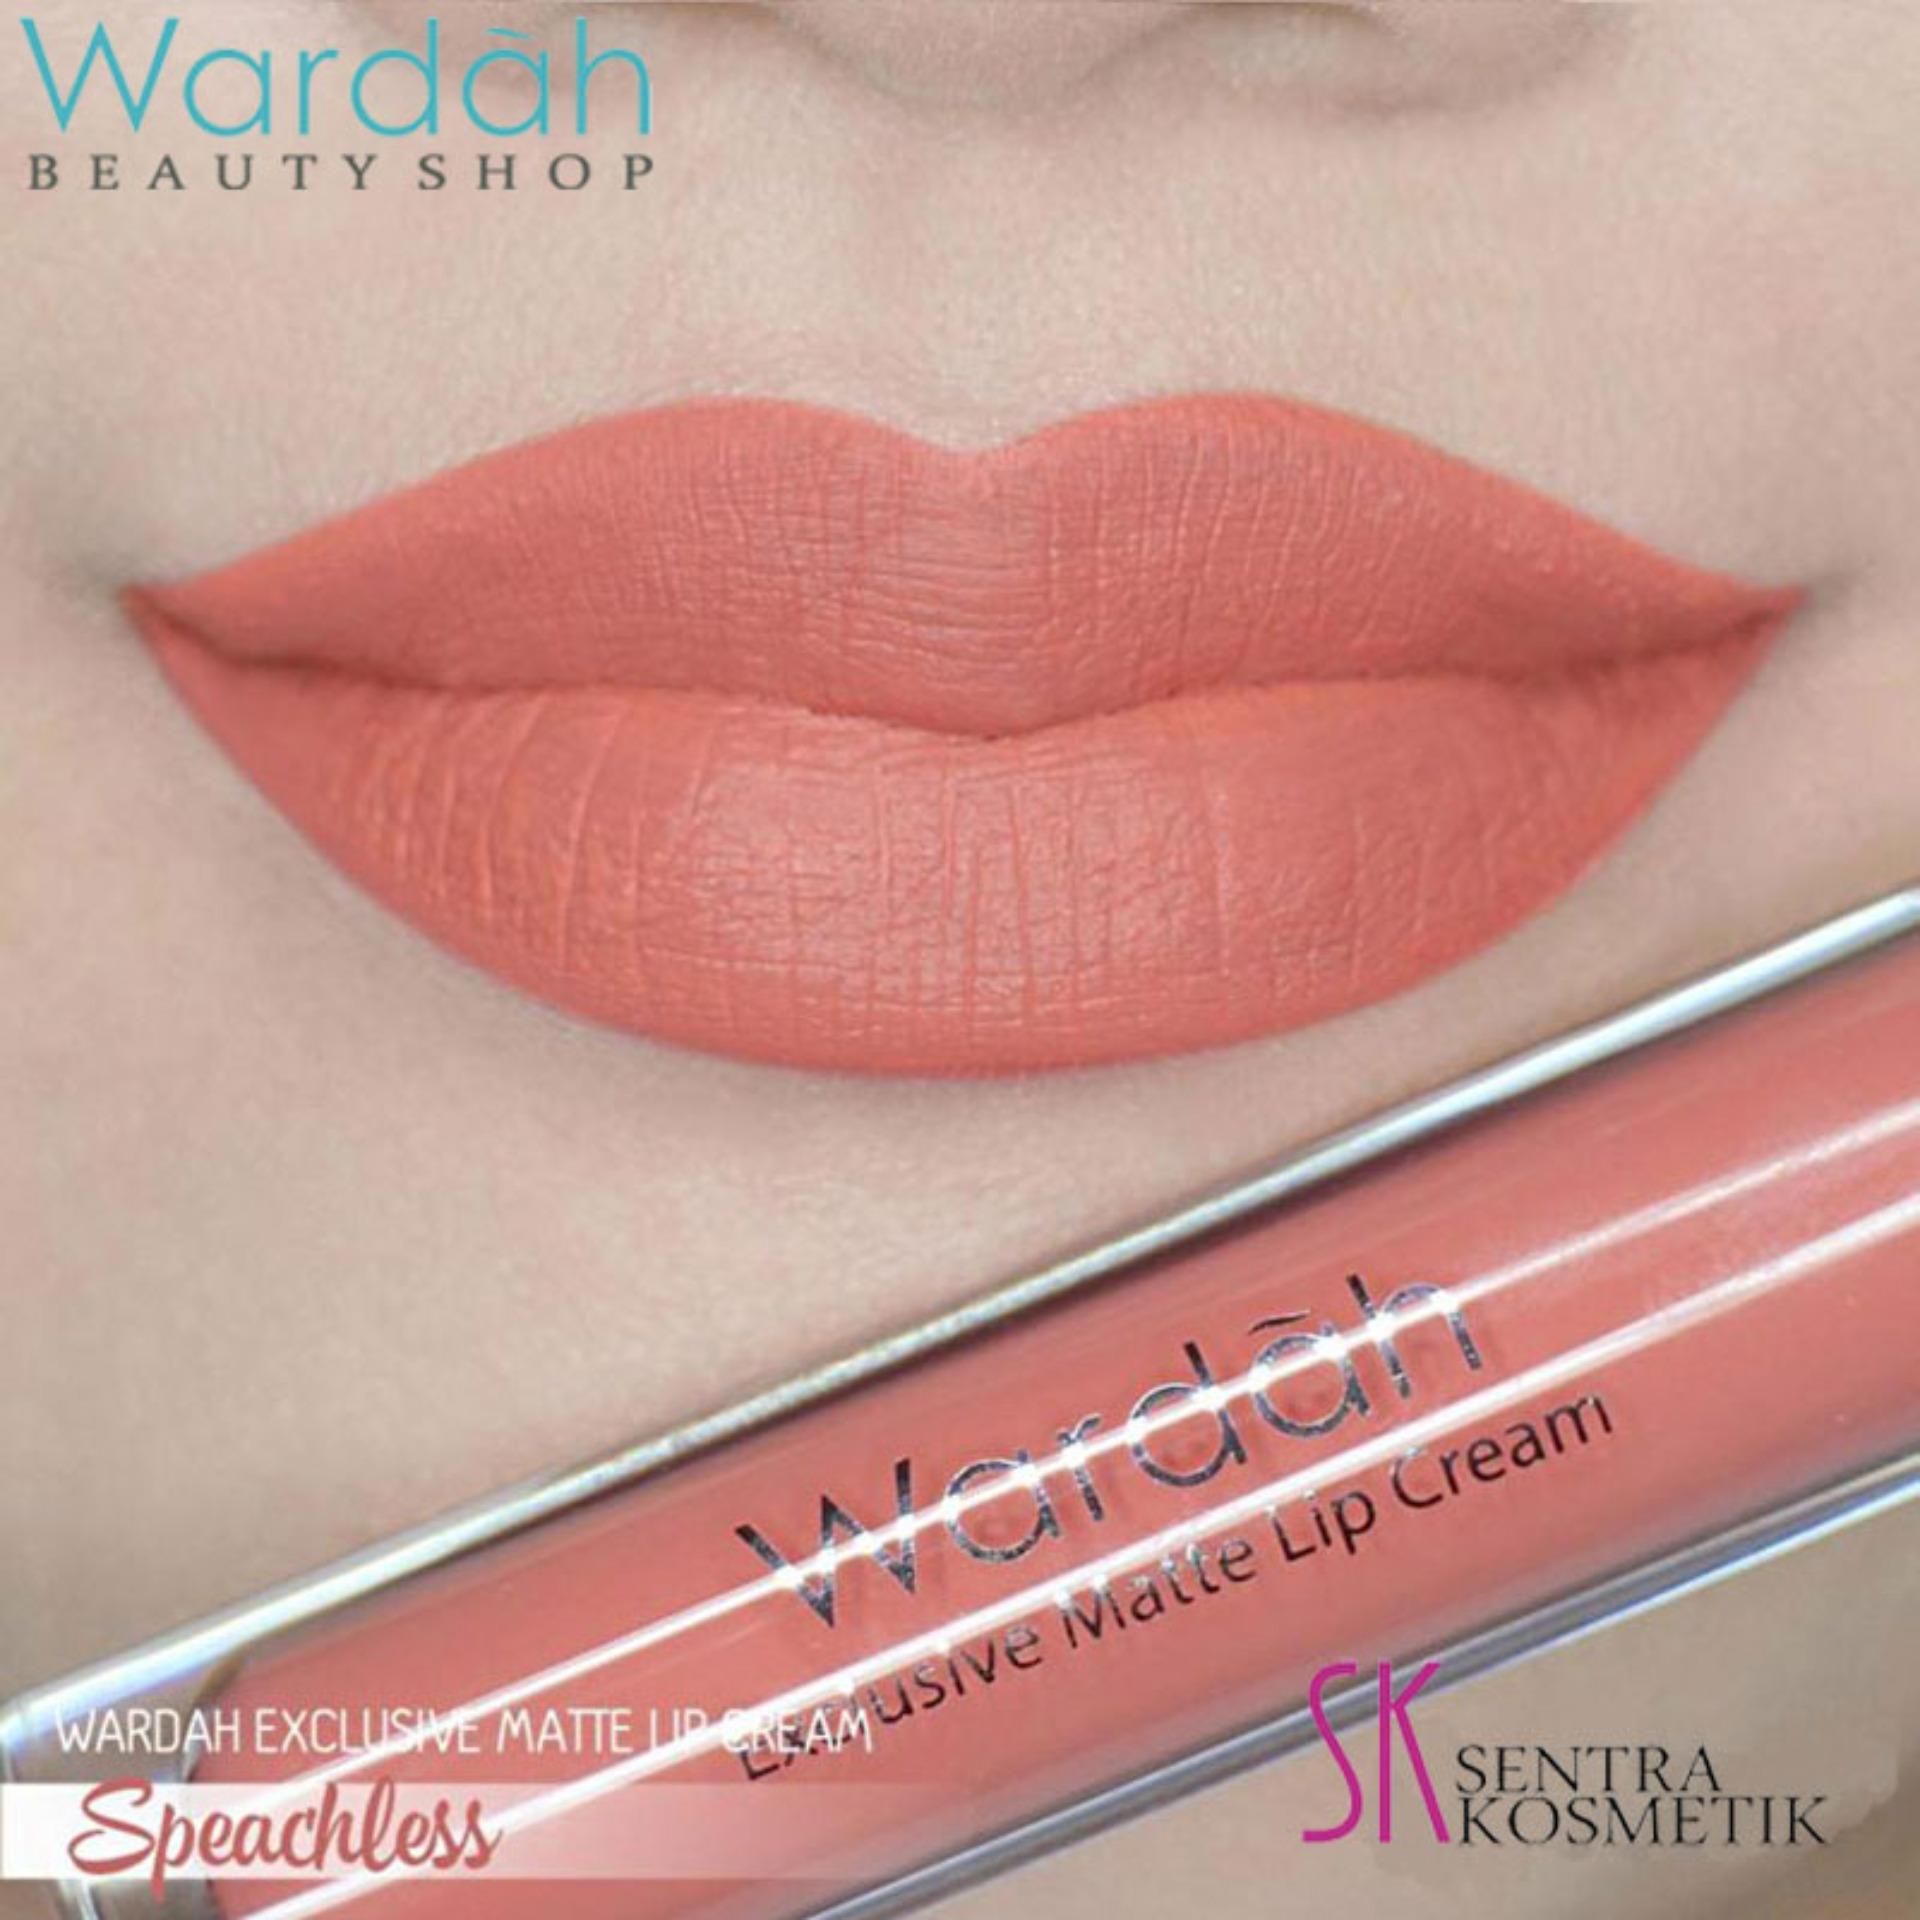 Wardah Exclusive Matte LIP CREAM 05 - Speechless